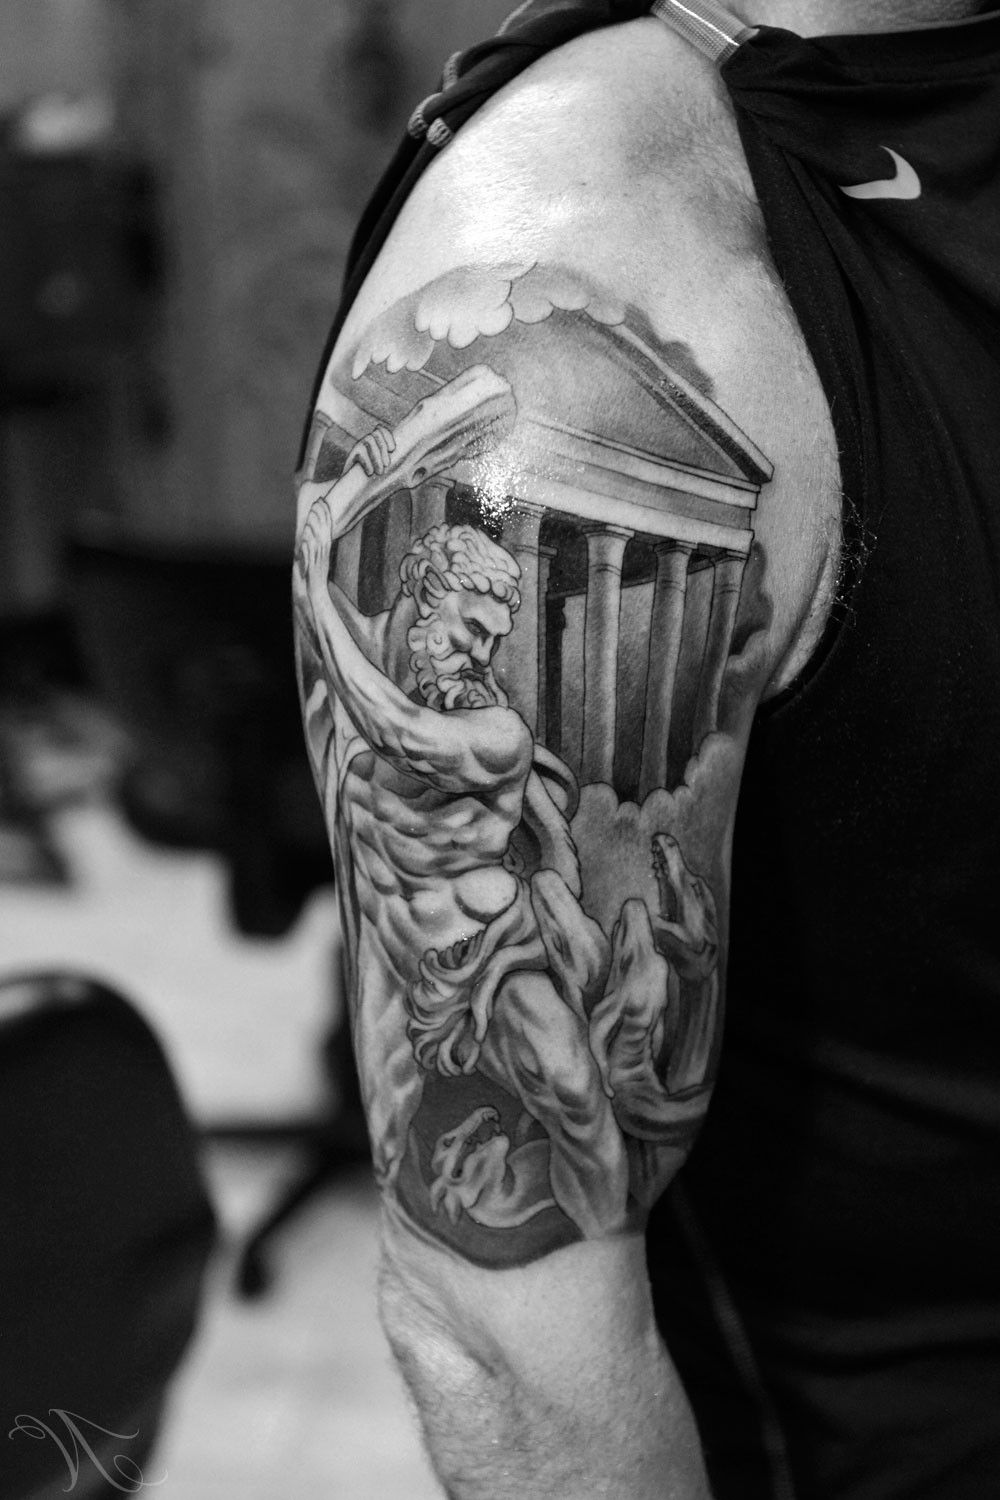 75 black and white tattoos for men masculine ink designs - Tattoo Designs